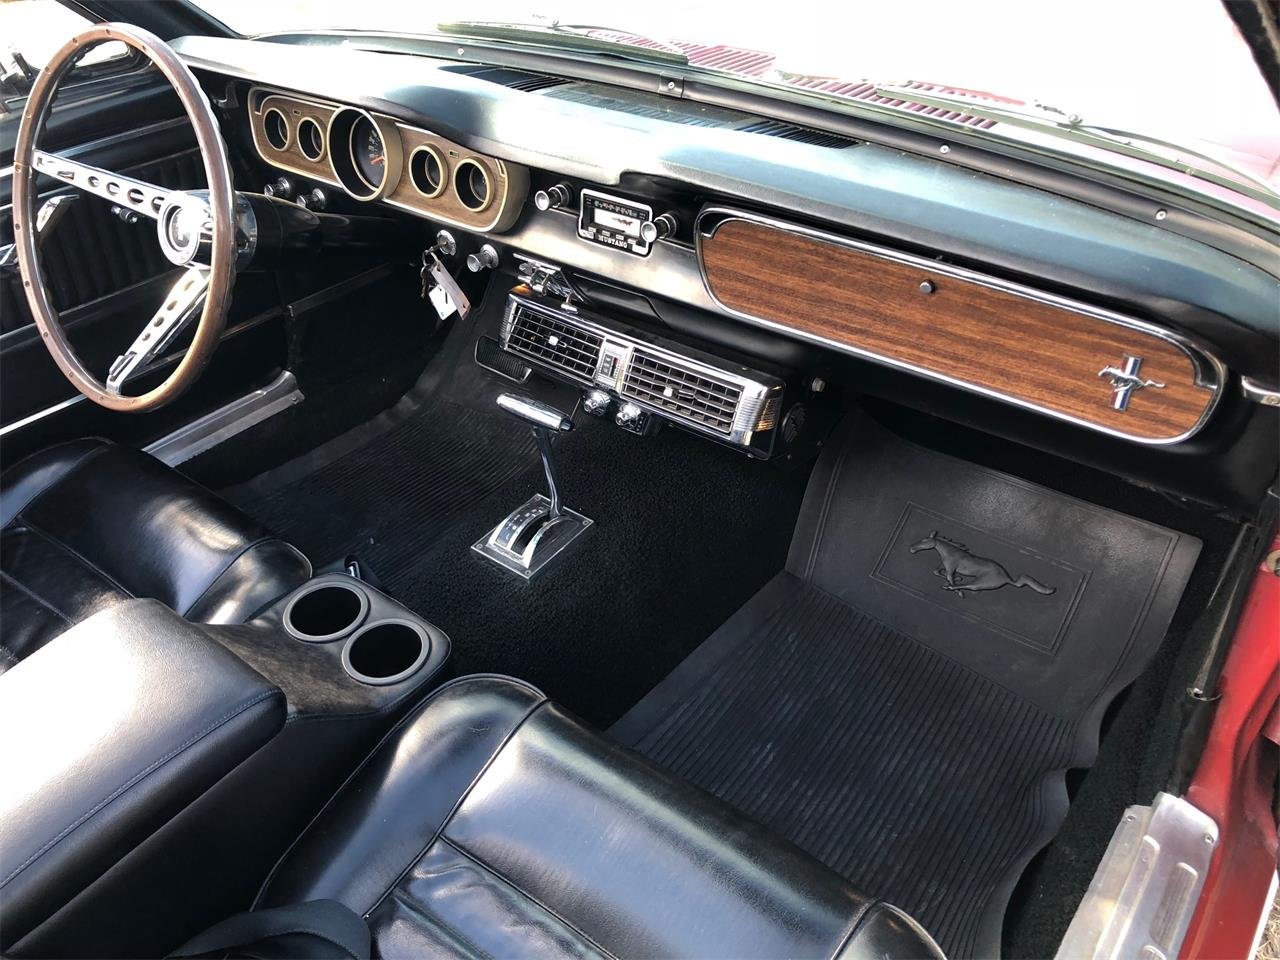 Large Picture of 1965 Mustang located in Texas Auction Vehicle Offered by Vicari Auction - N8T8